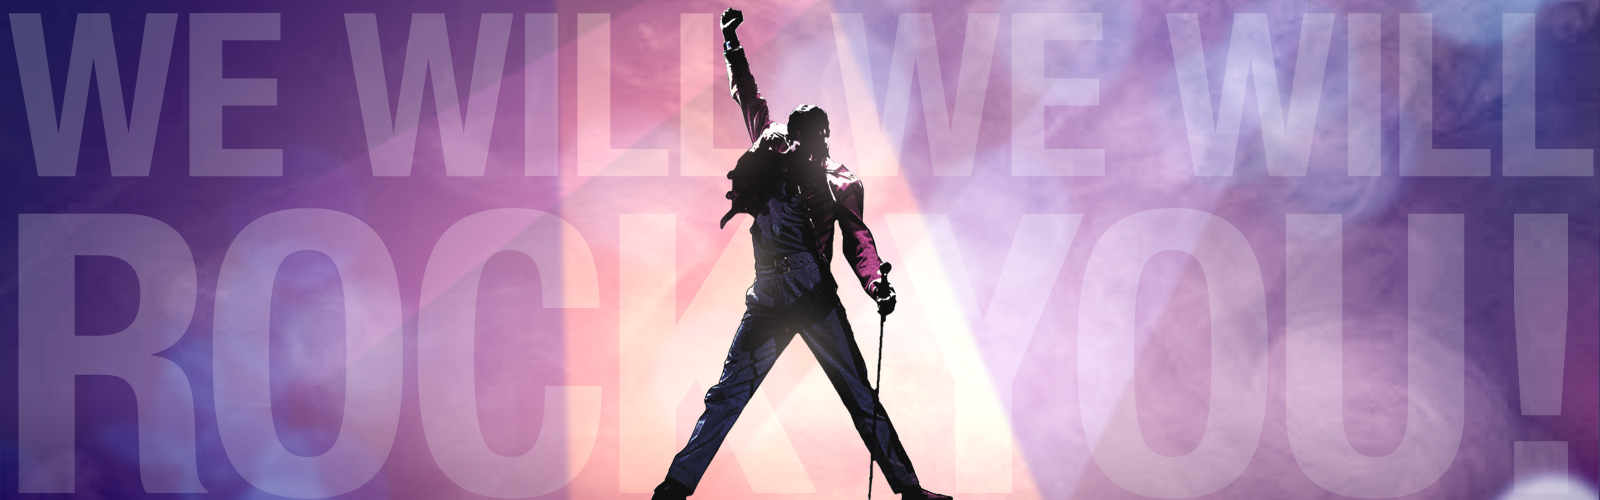 The Charlotte Symphony along with a vocalist and full rock band perform the music of Freddie Mercury and Queen on June 8 at Belk Theater.